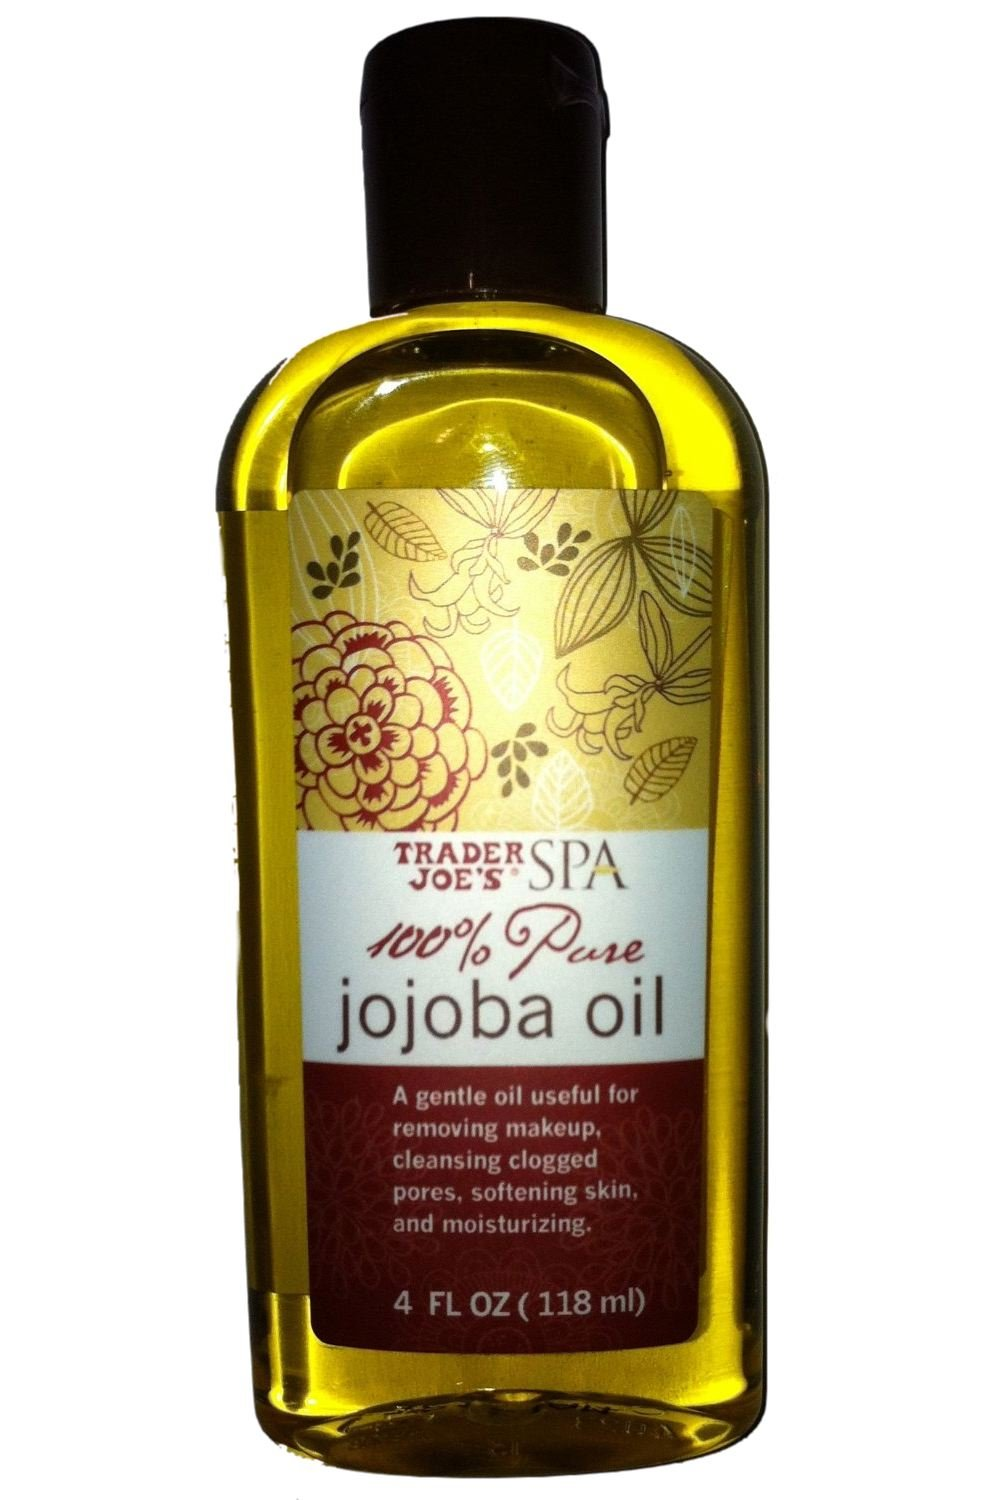 Trader Joe's - Trader Joe's 100% Pure Jojoba Oil 4 Oz